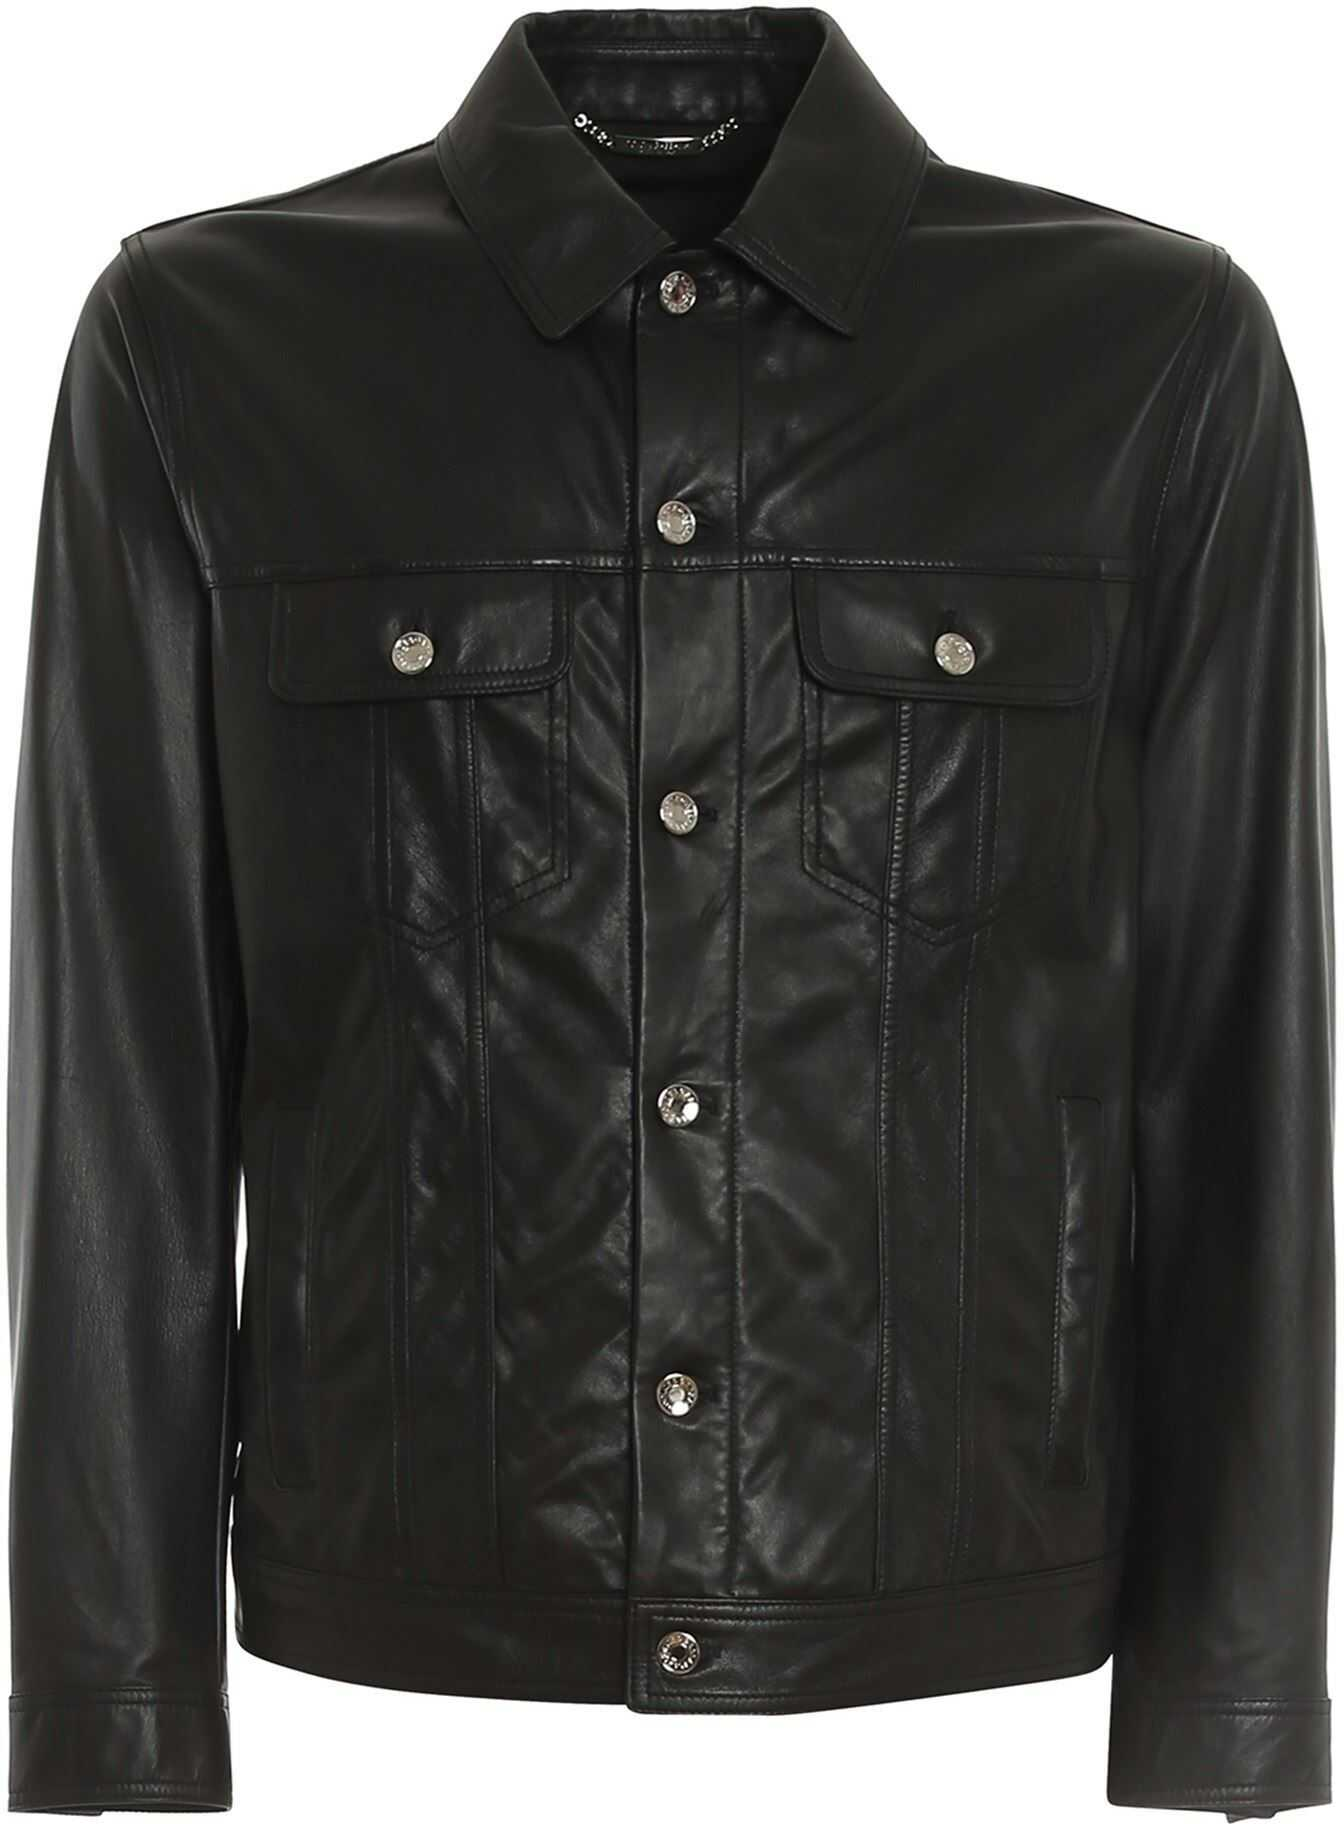 Dolce & Gabbana Leather Jacket With Logoed Silver Buttons In Black Black imagine